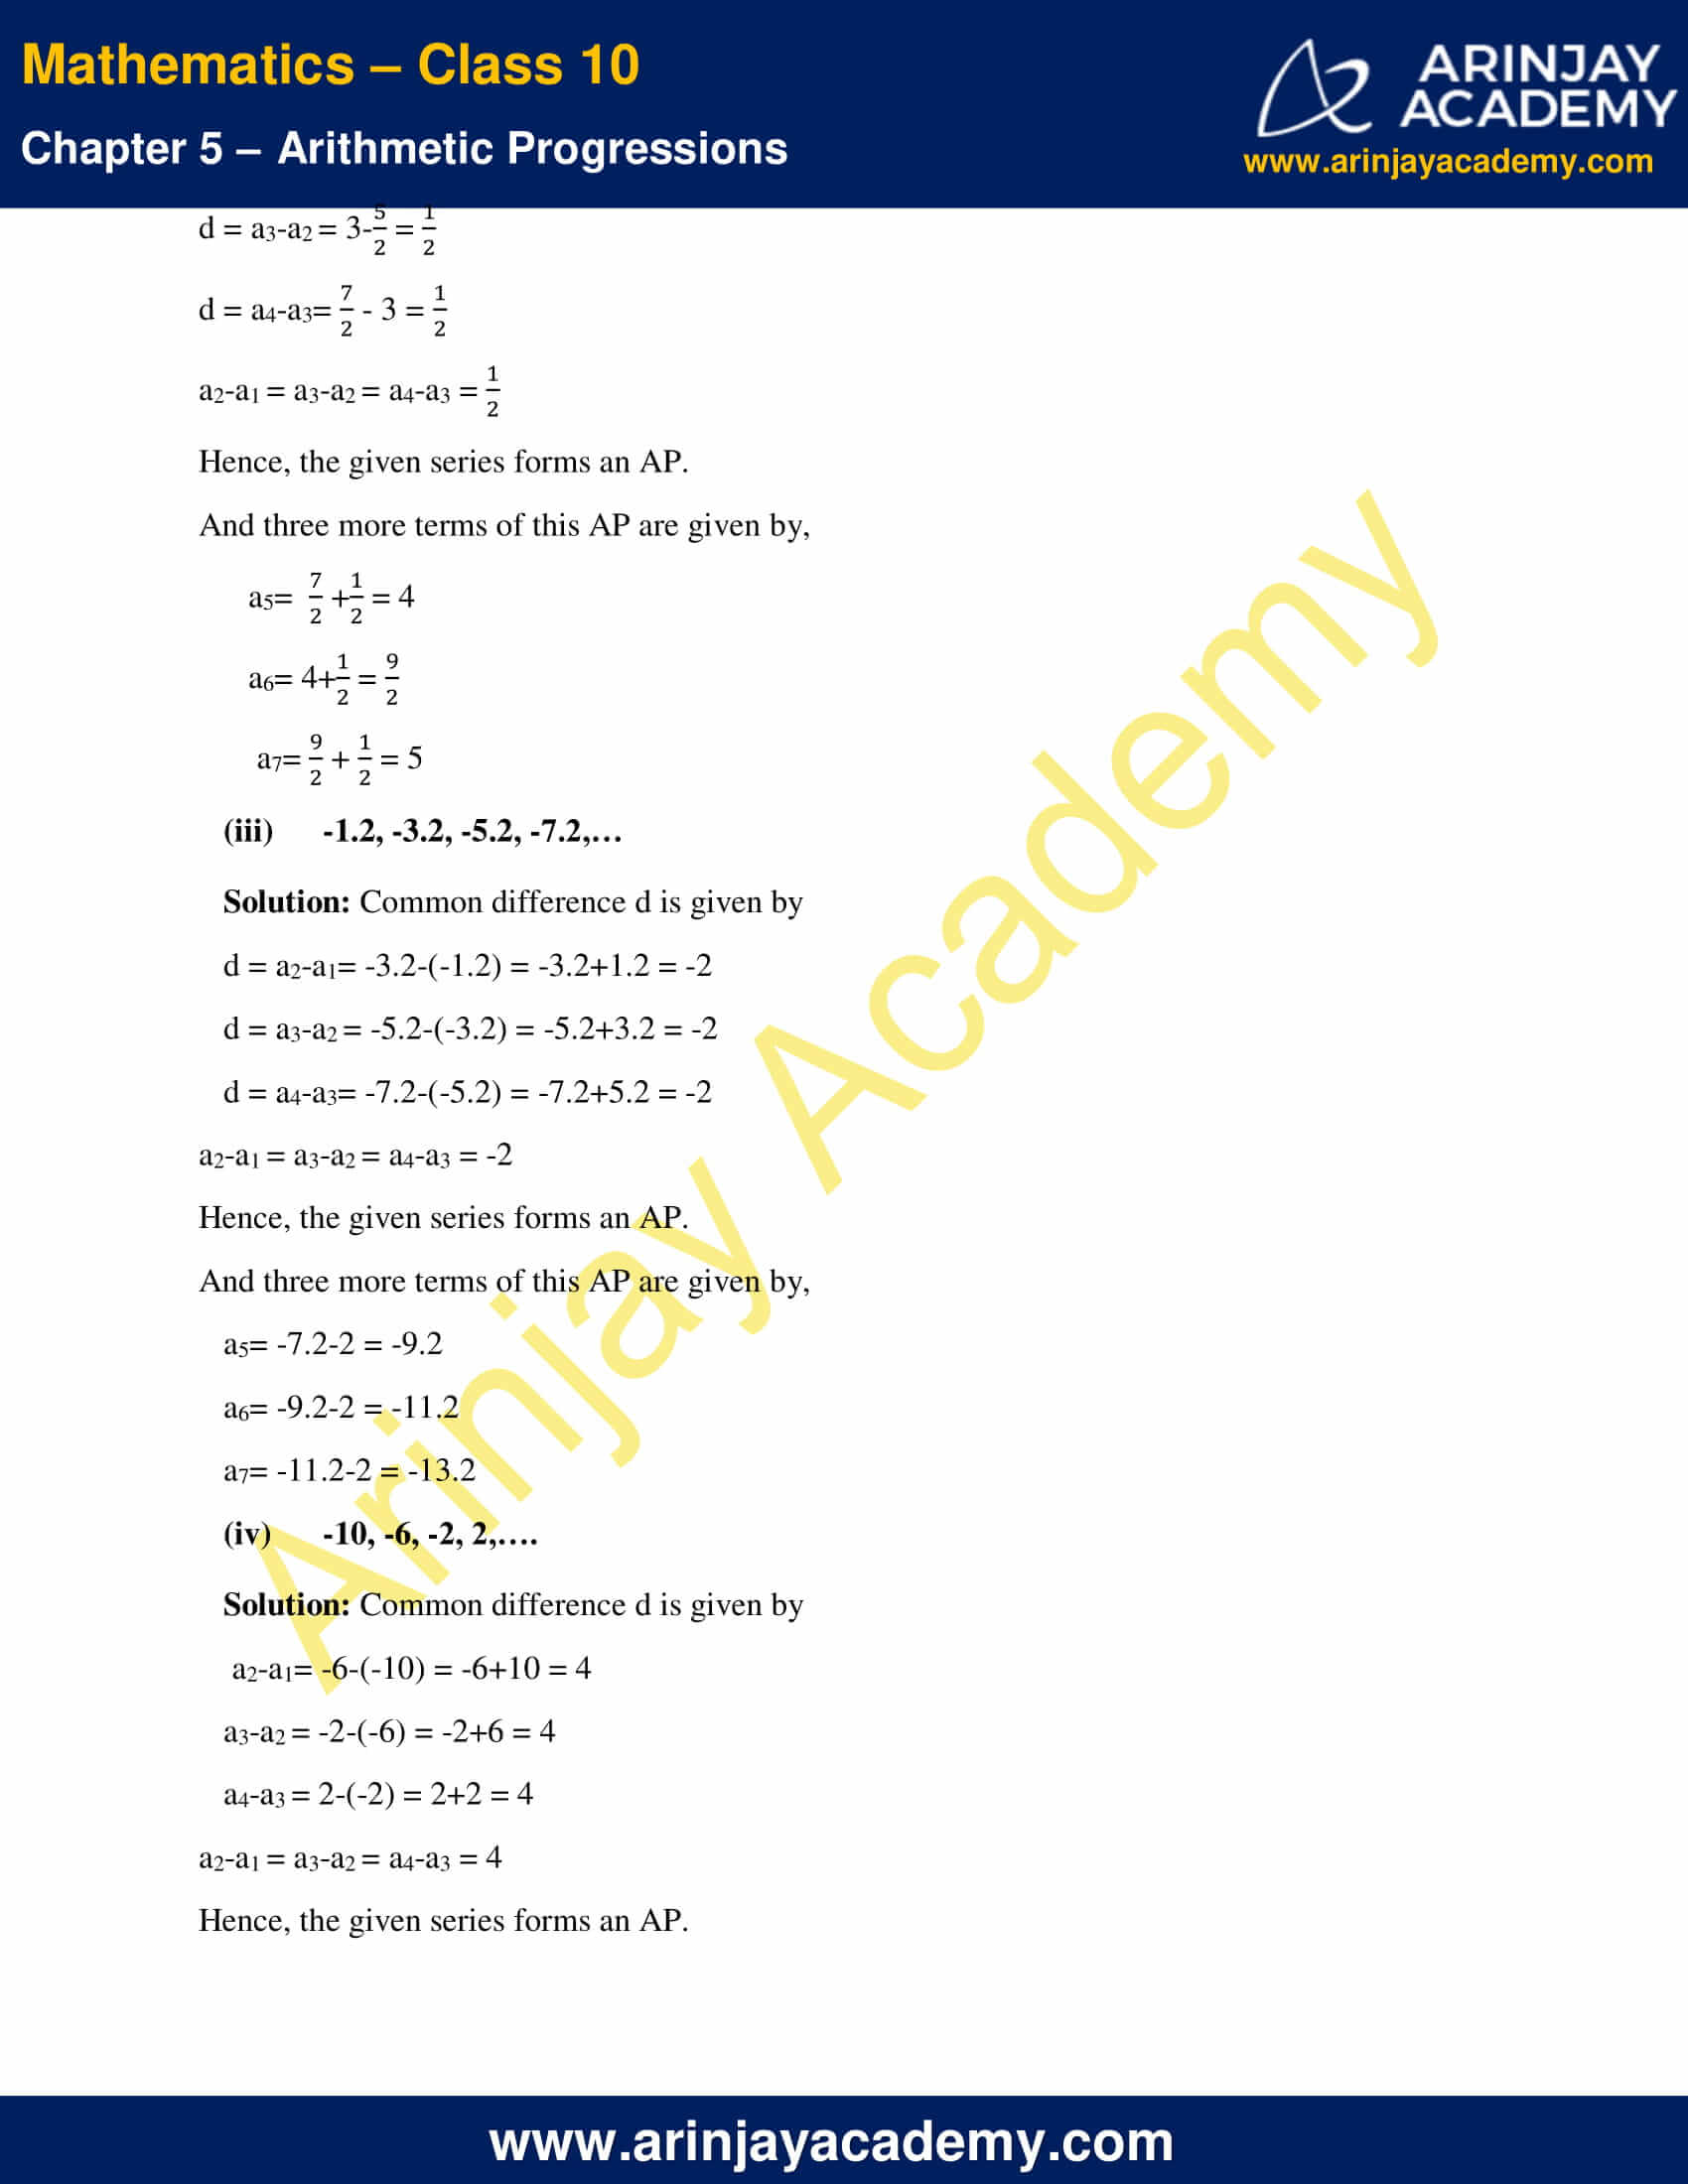 NCERT Solutions For Class 10 Maths Chapter 5 Exercise 5.1 image 5